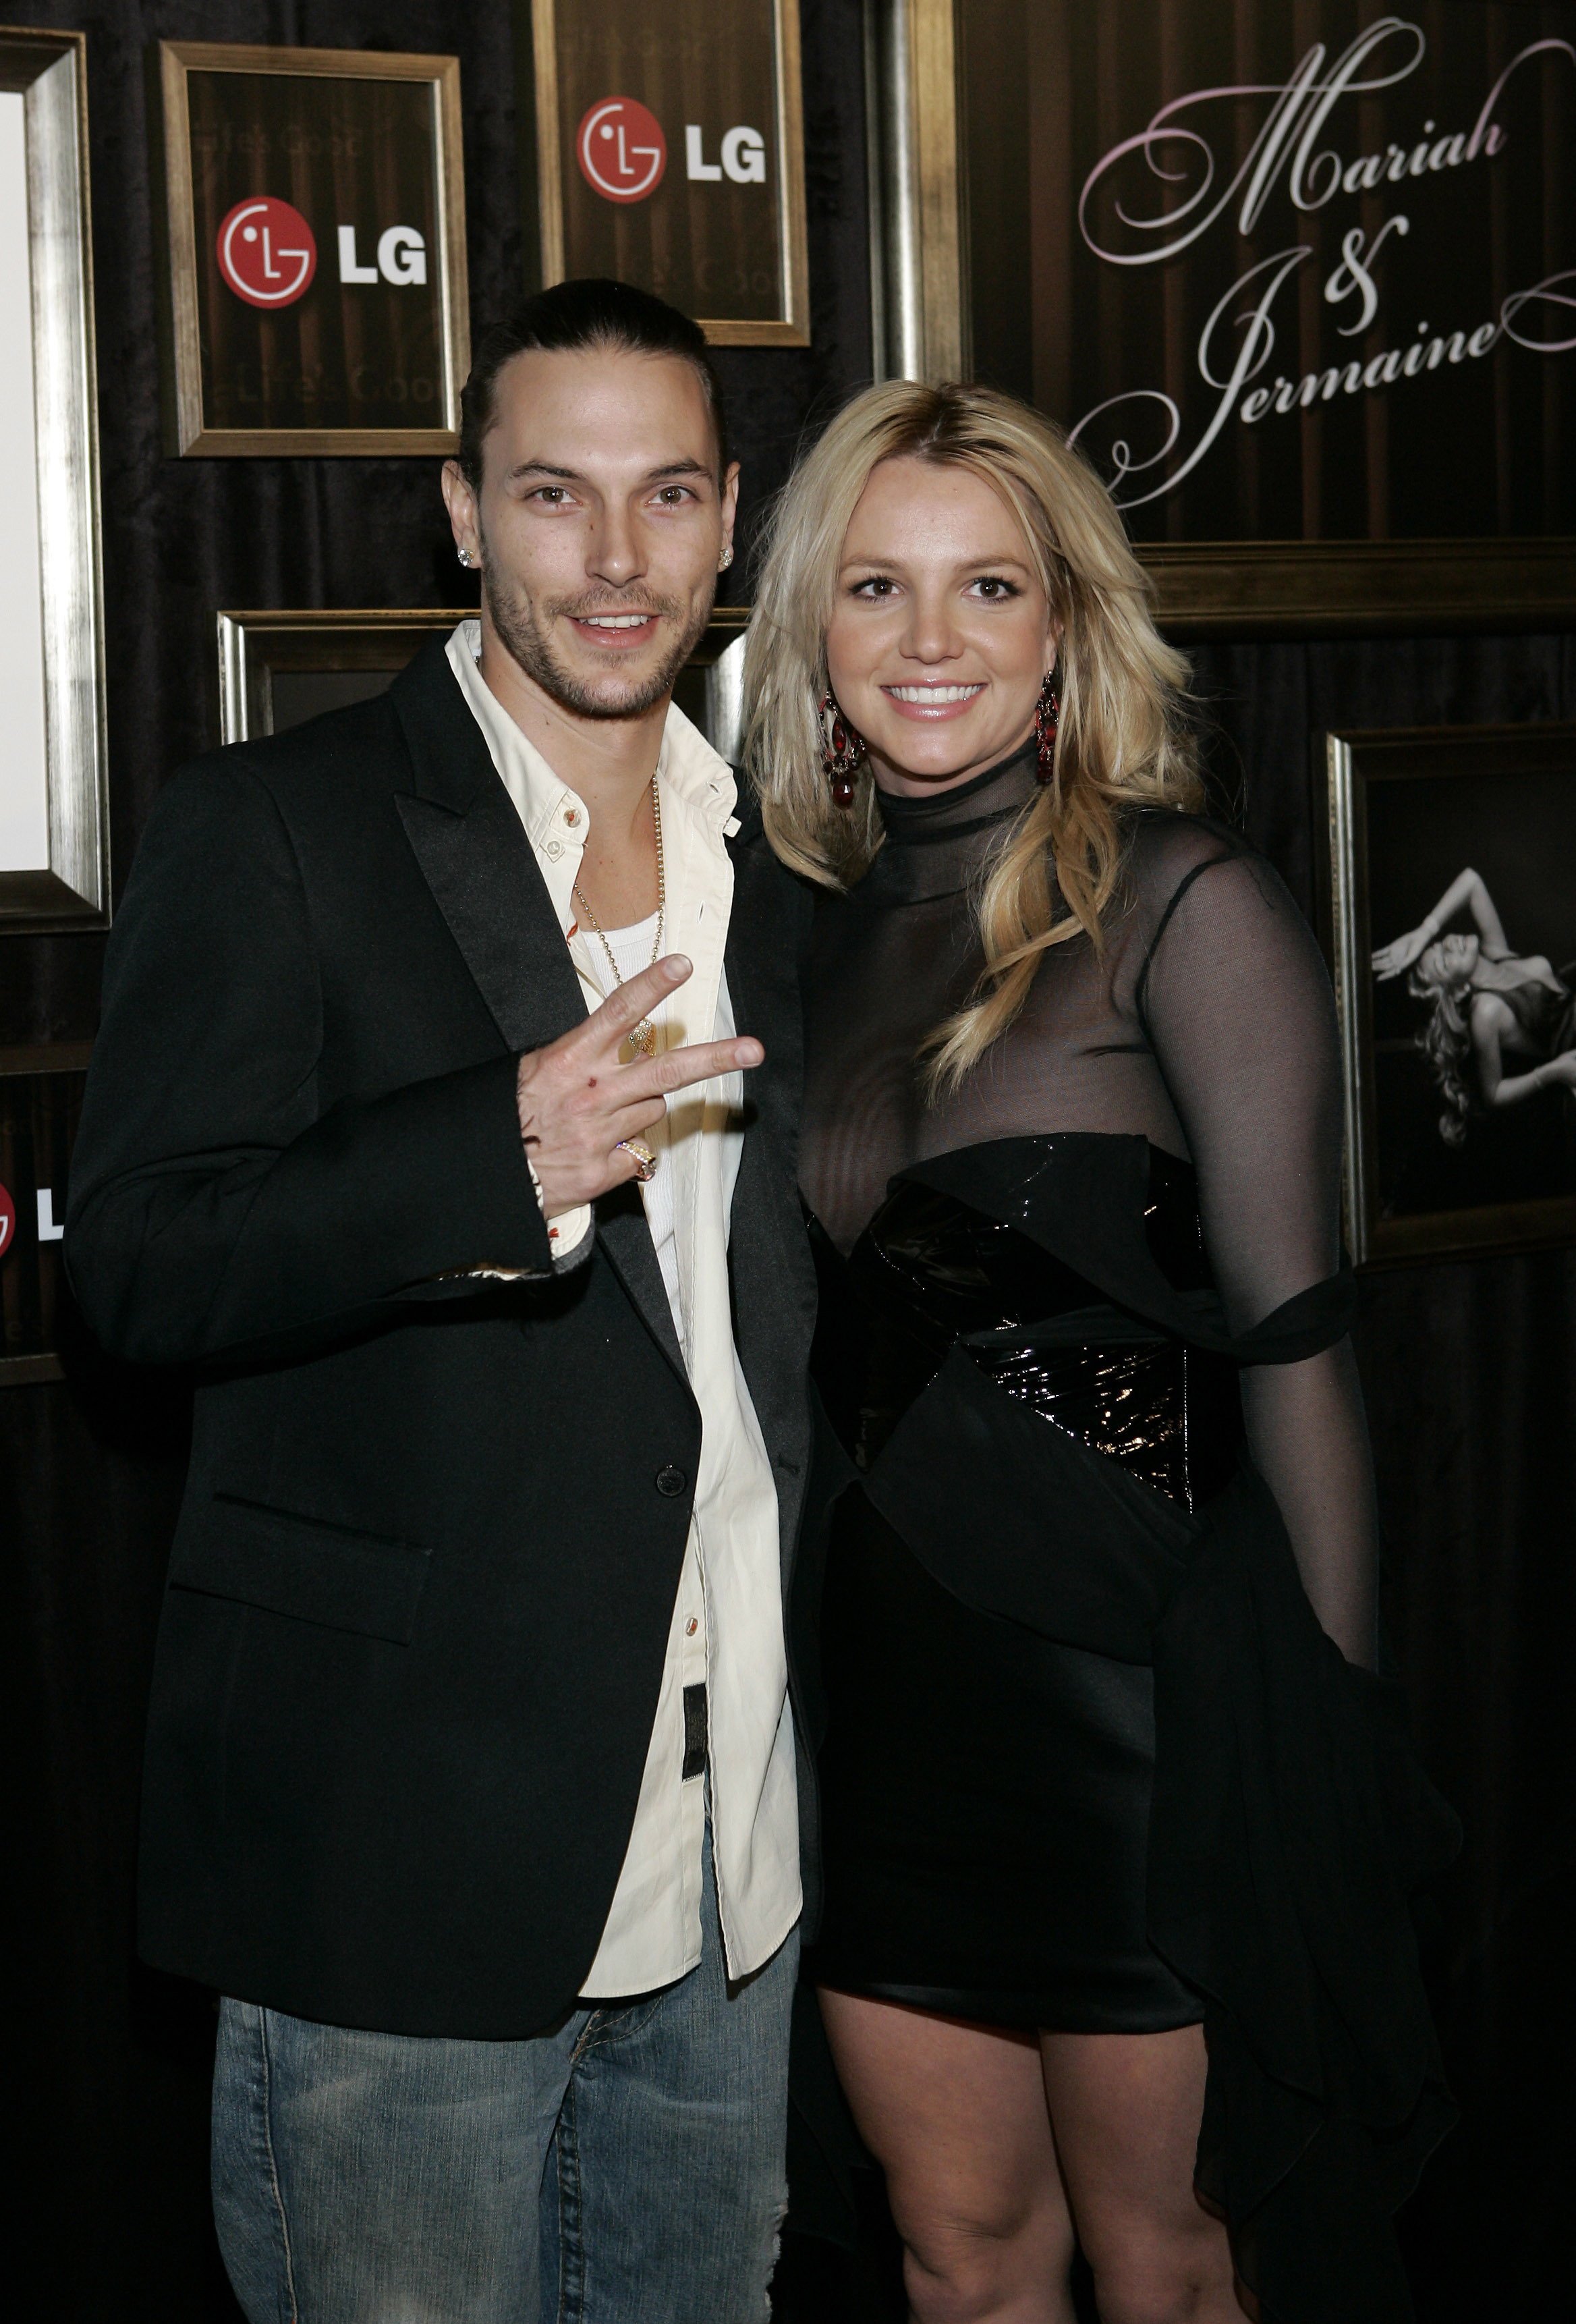 Kevin Federline wants a child support increase from Britney Spears